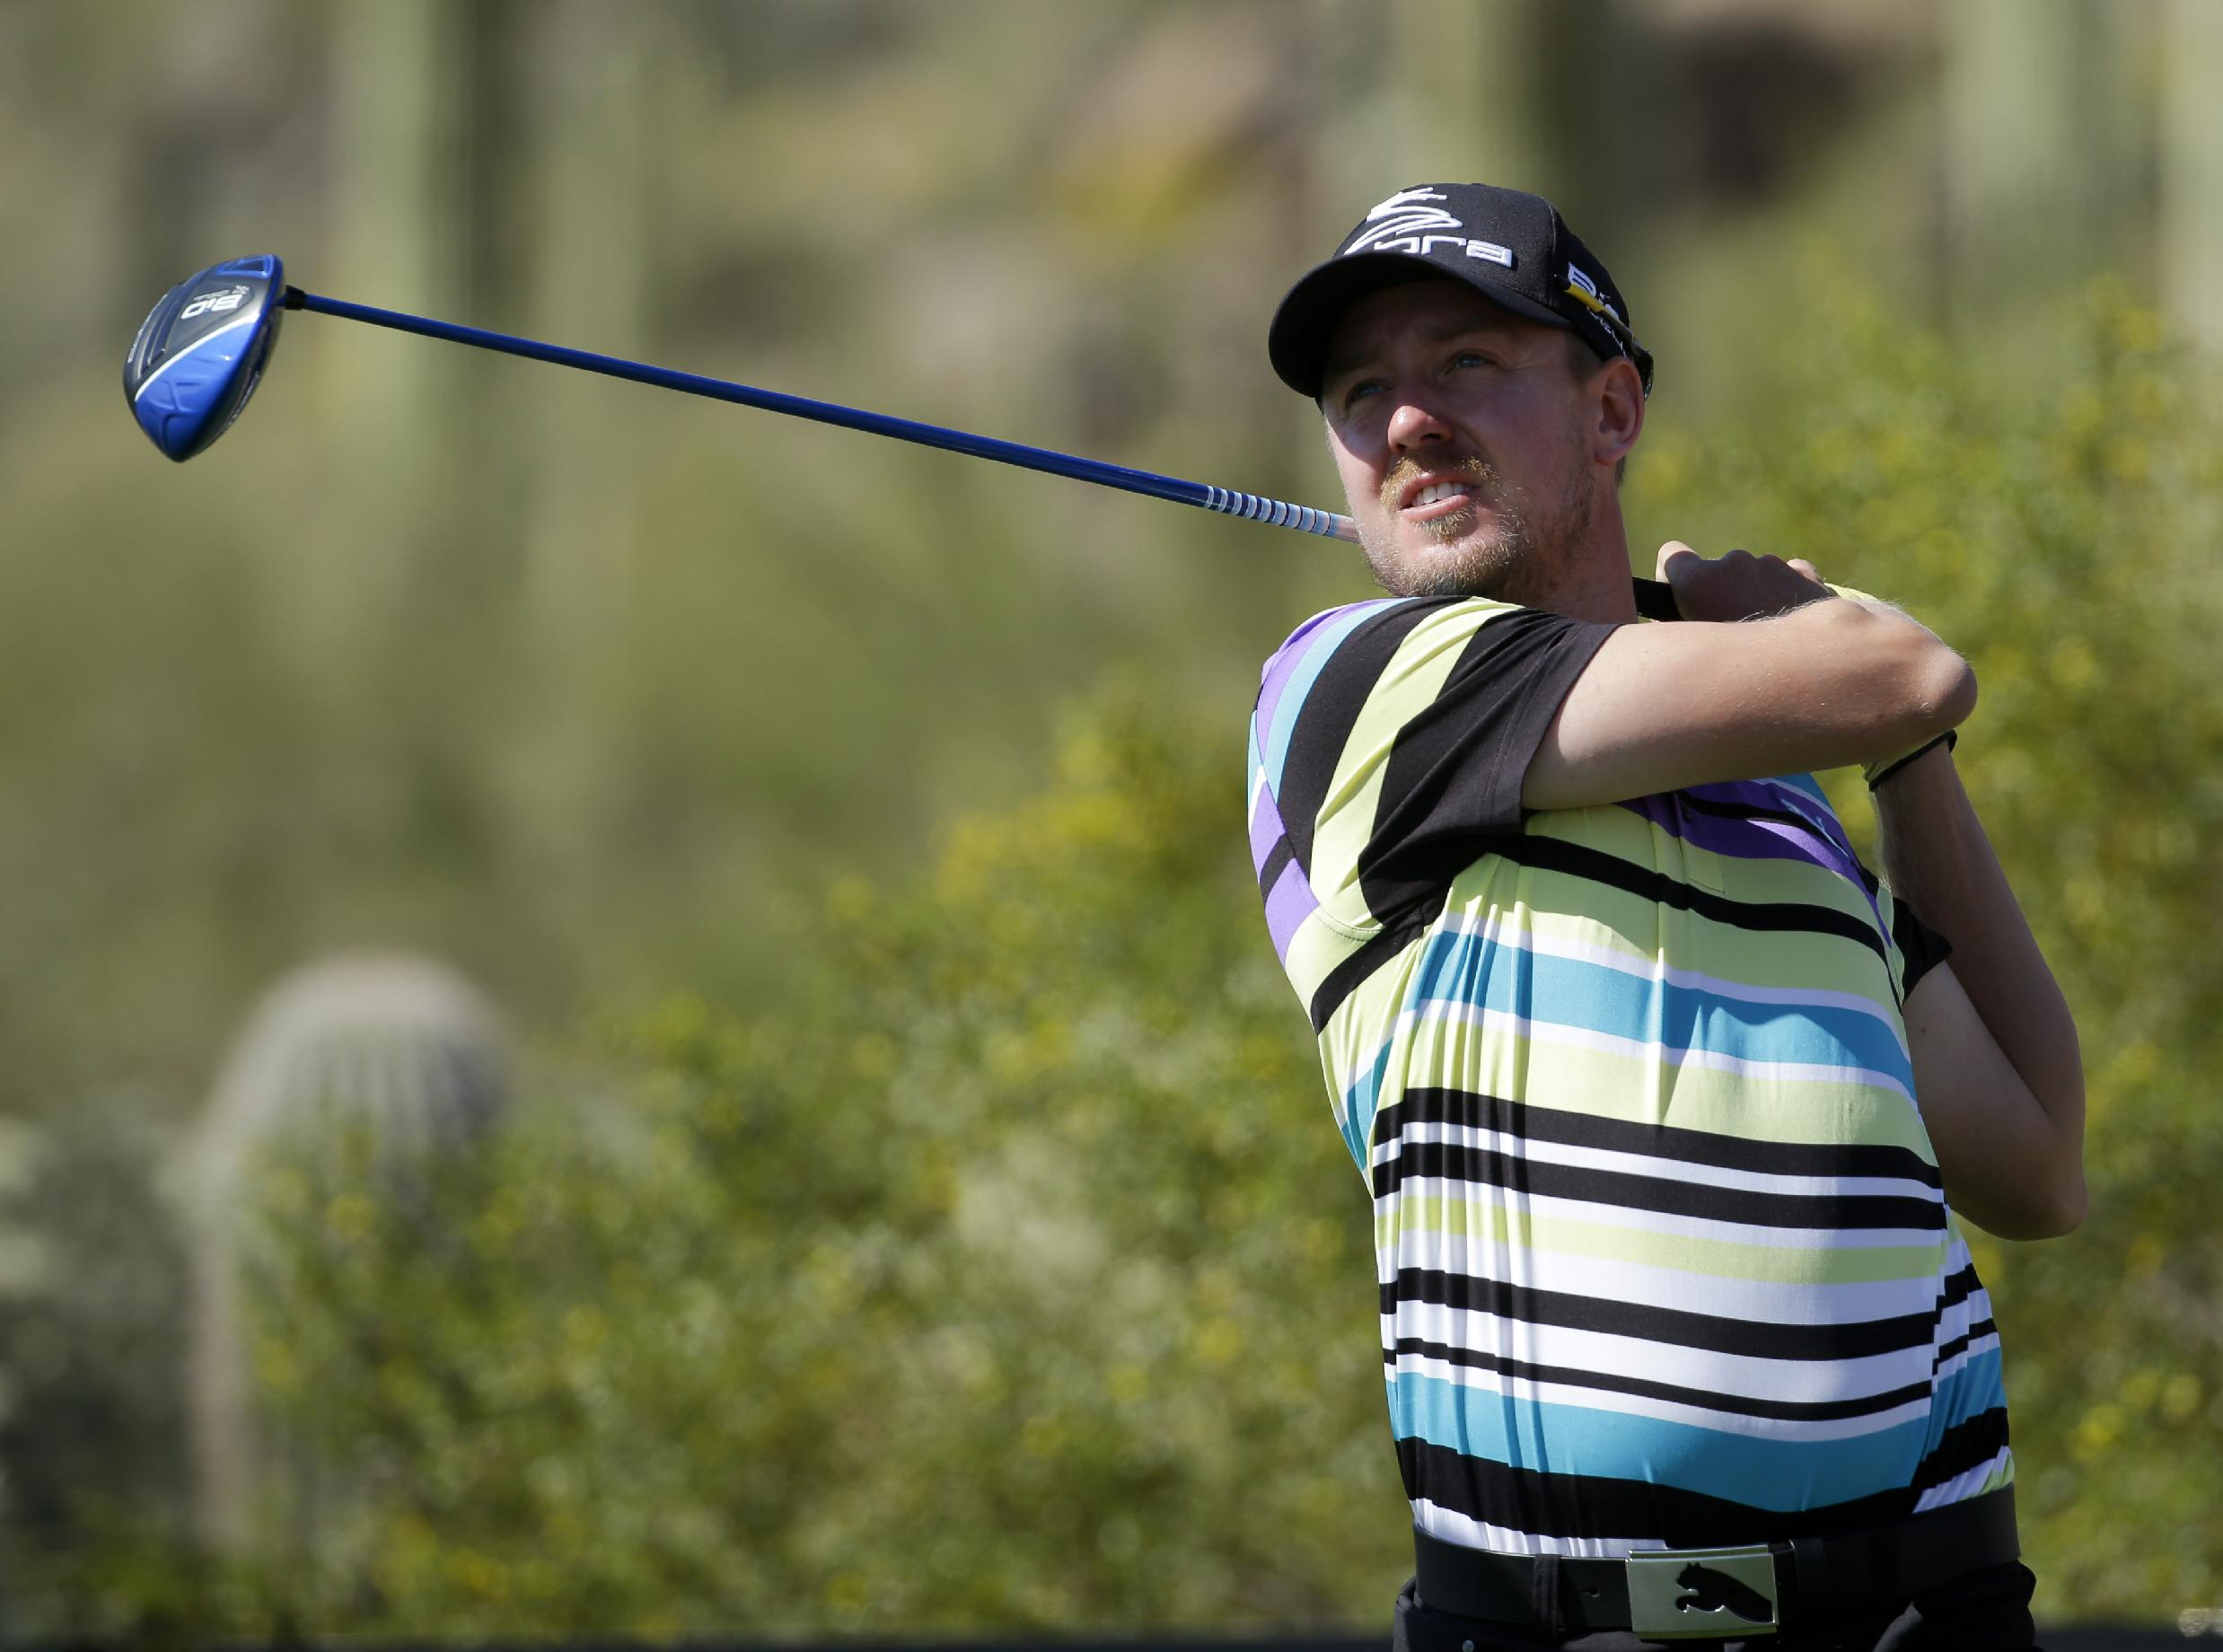 Jonas Blixt, of Sweden, watches his tee shot on the 17th hole in his second-round match against Bubba Watson during the Match Play Championship golf tournament Thursday, Feb. 20, 2014, in Marana, Ariz